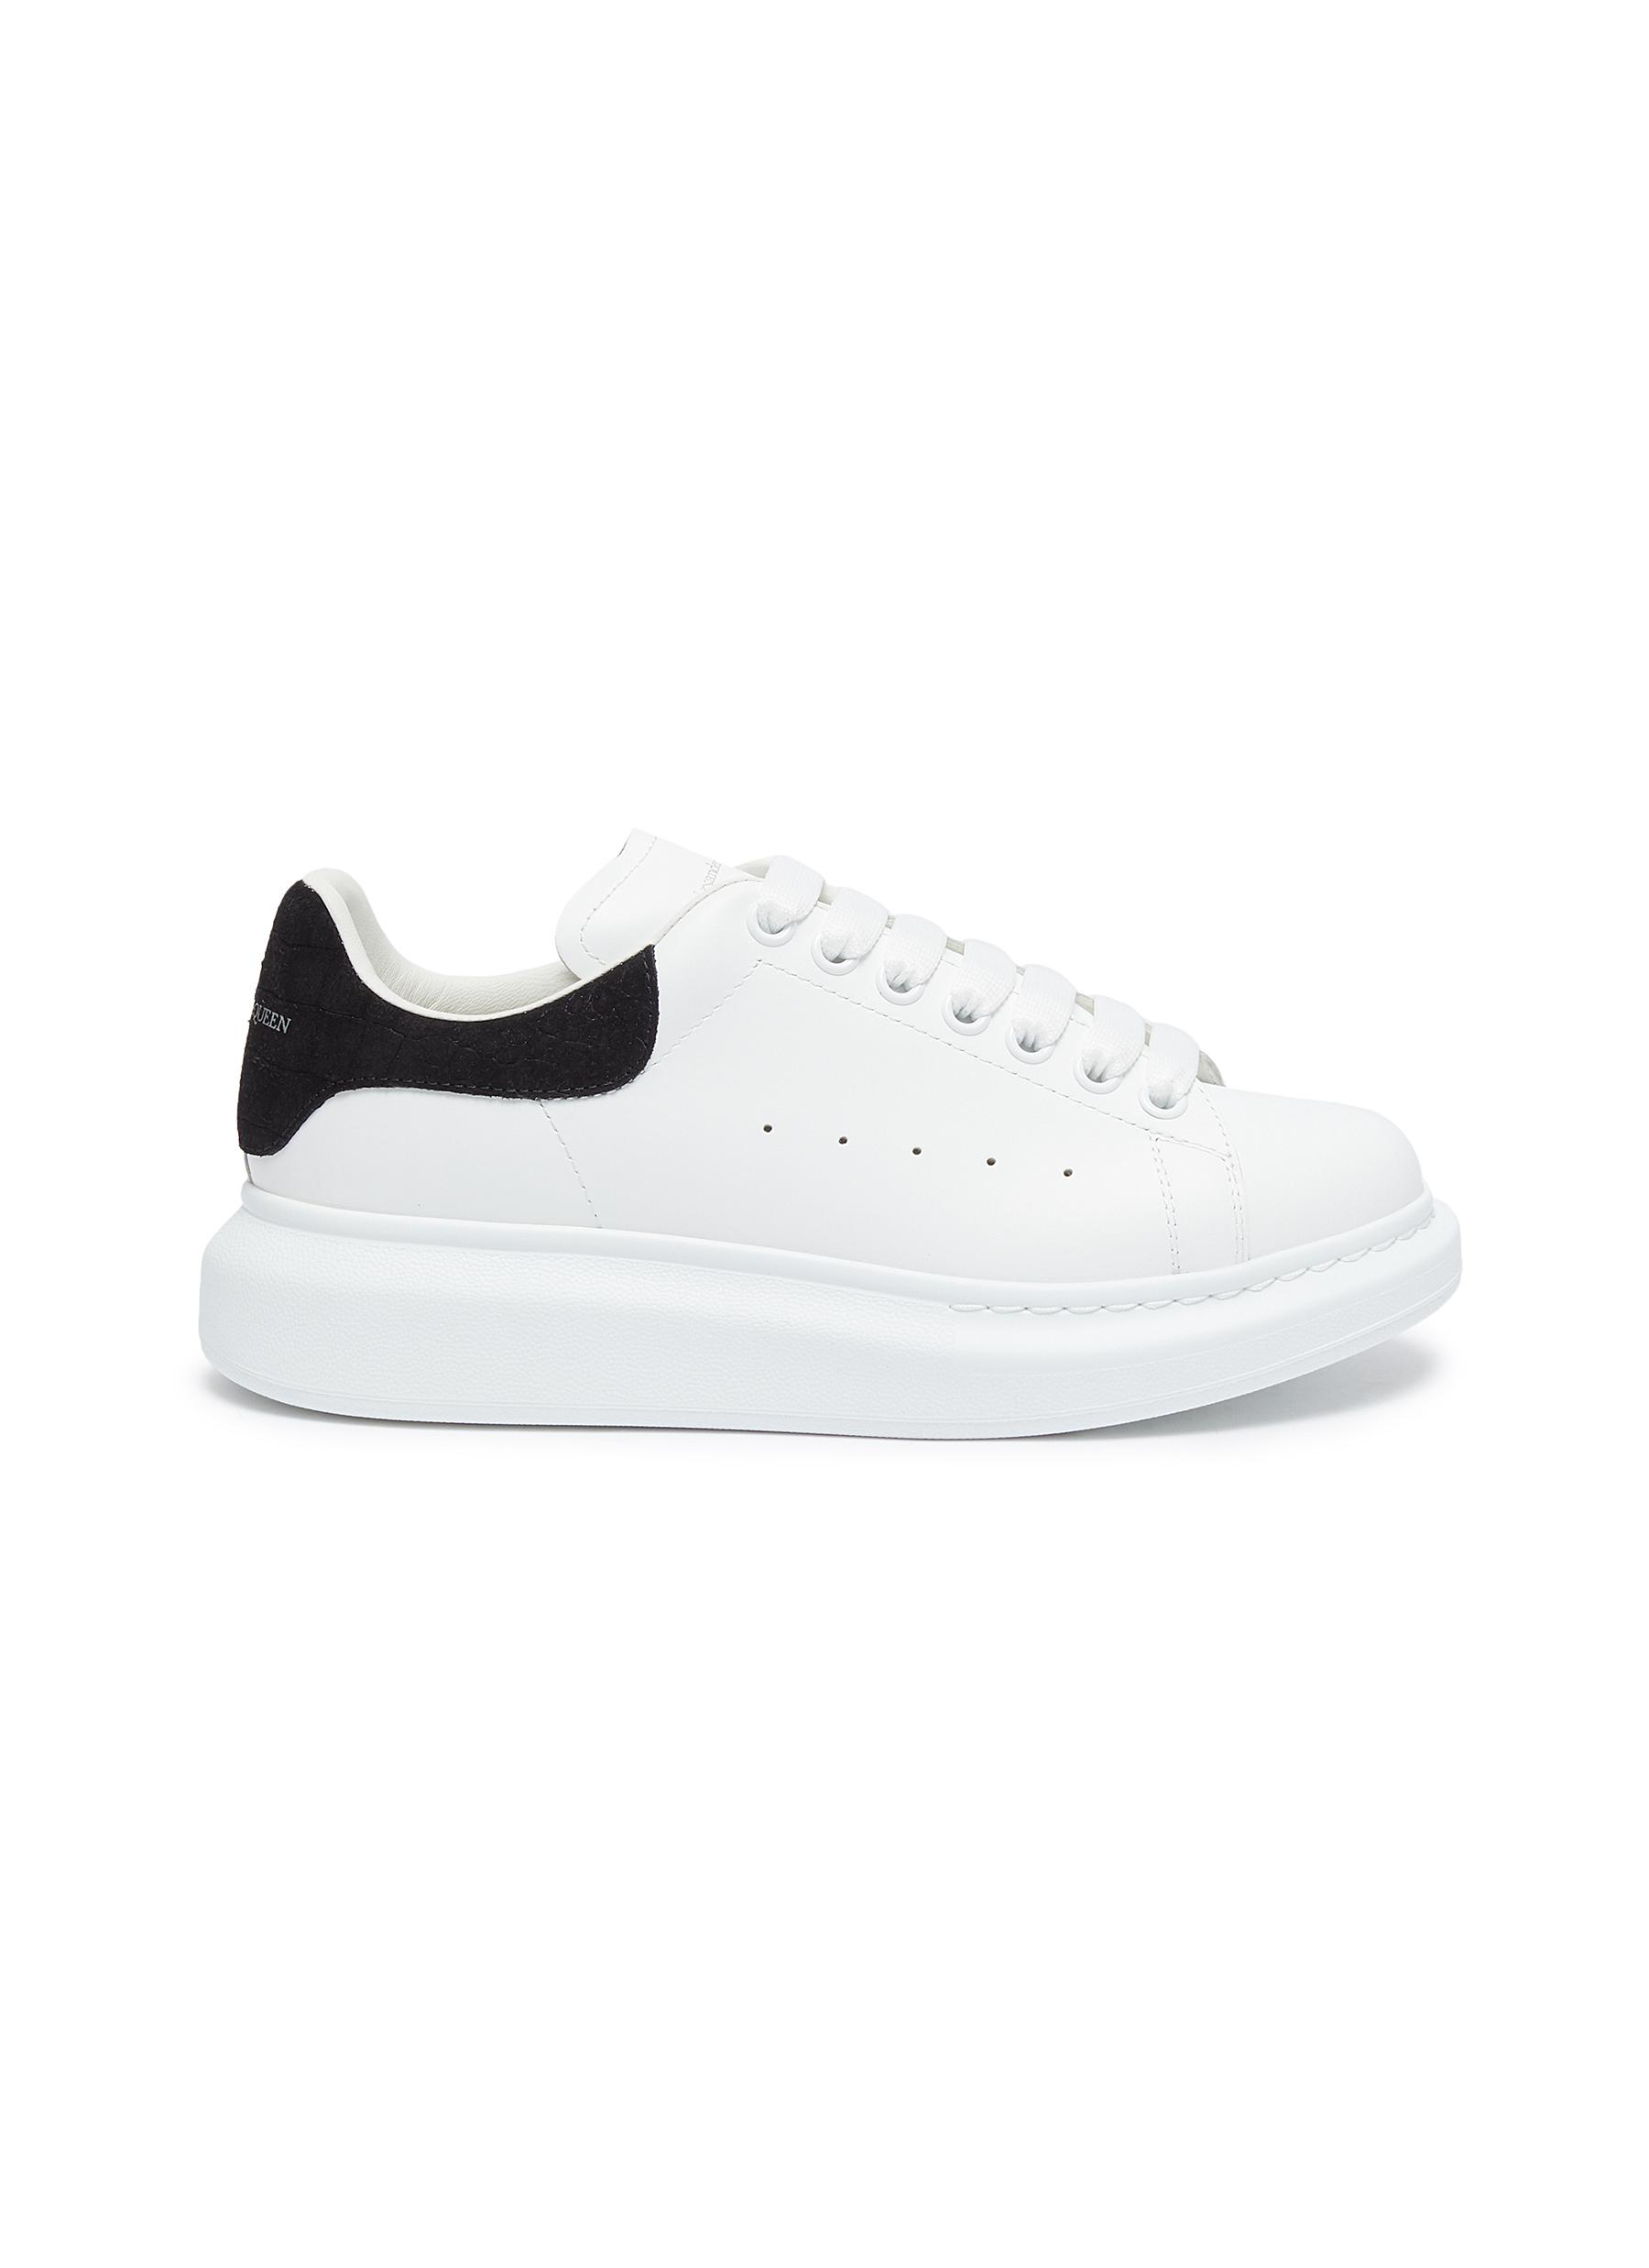 'Oversized Sneakers' in Calfskin Leather